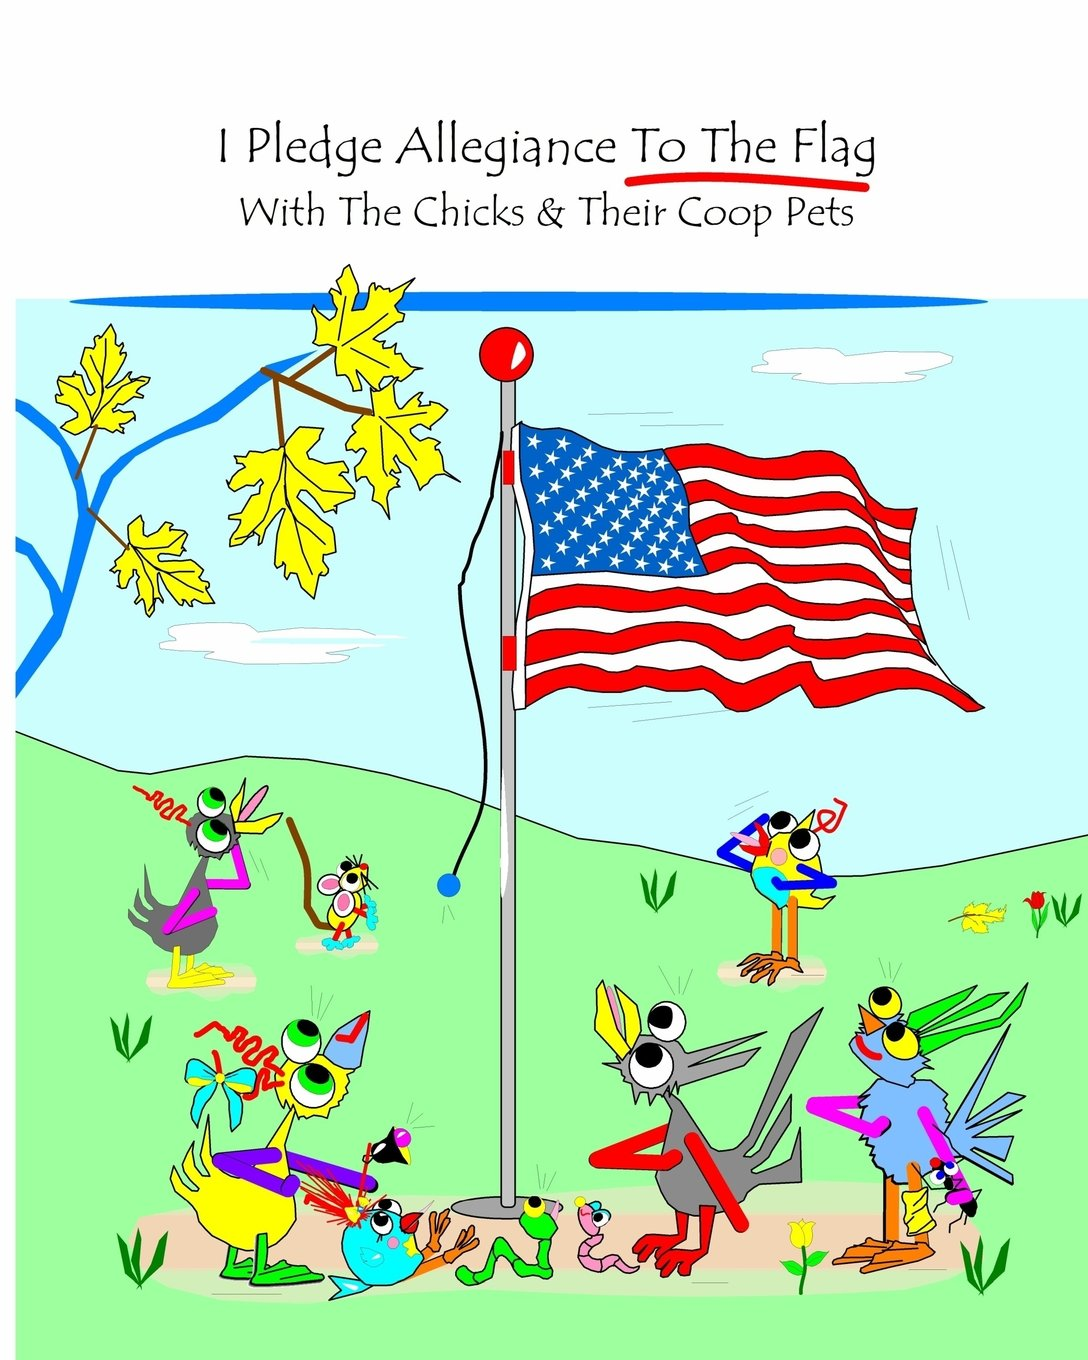 I Pledge Allegiance To The Flag: With The Chicks and Their Coop Pets ebook